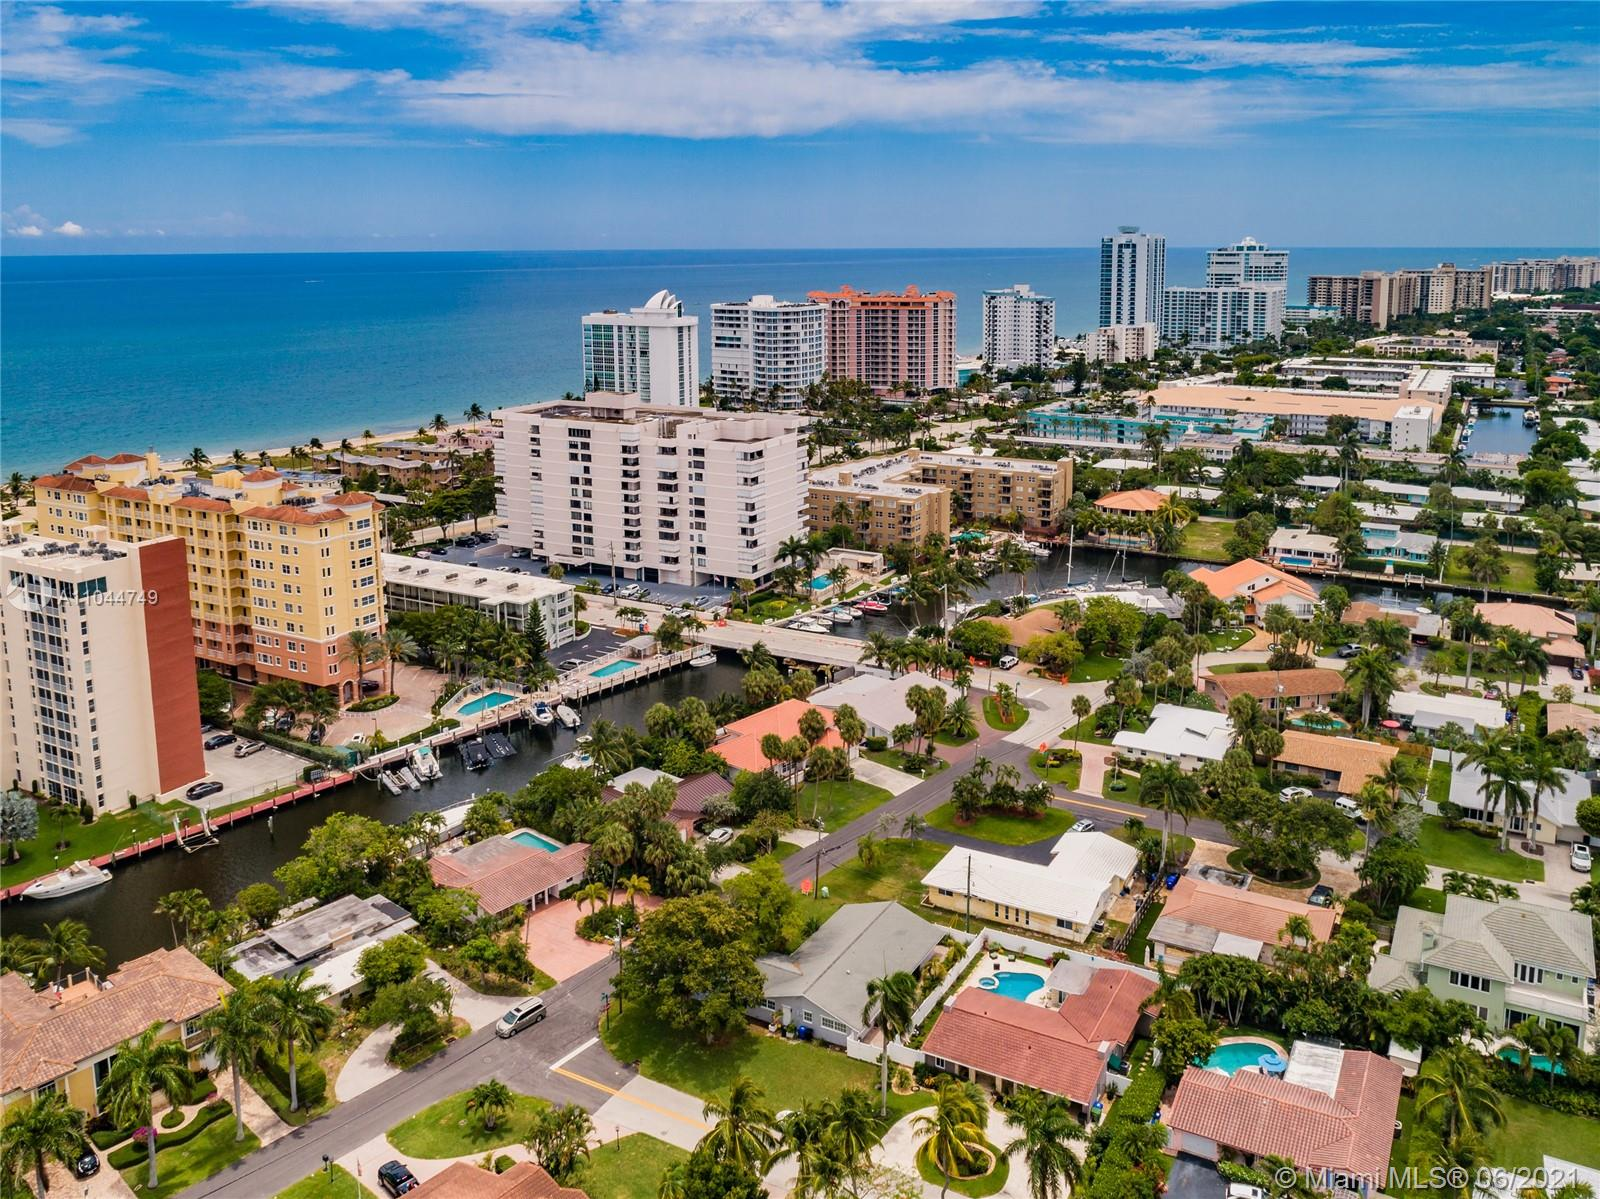 1801 Terra Mar Dr, Lauderdale By The Sea, Florida 33062